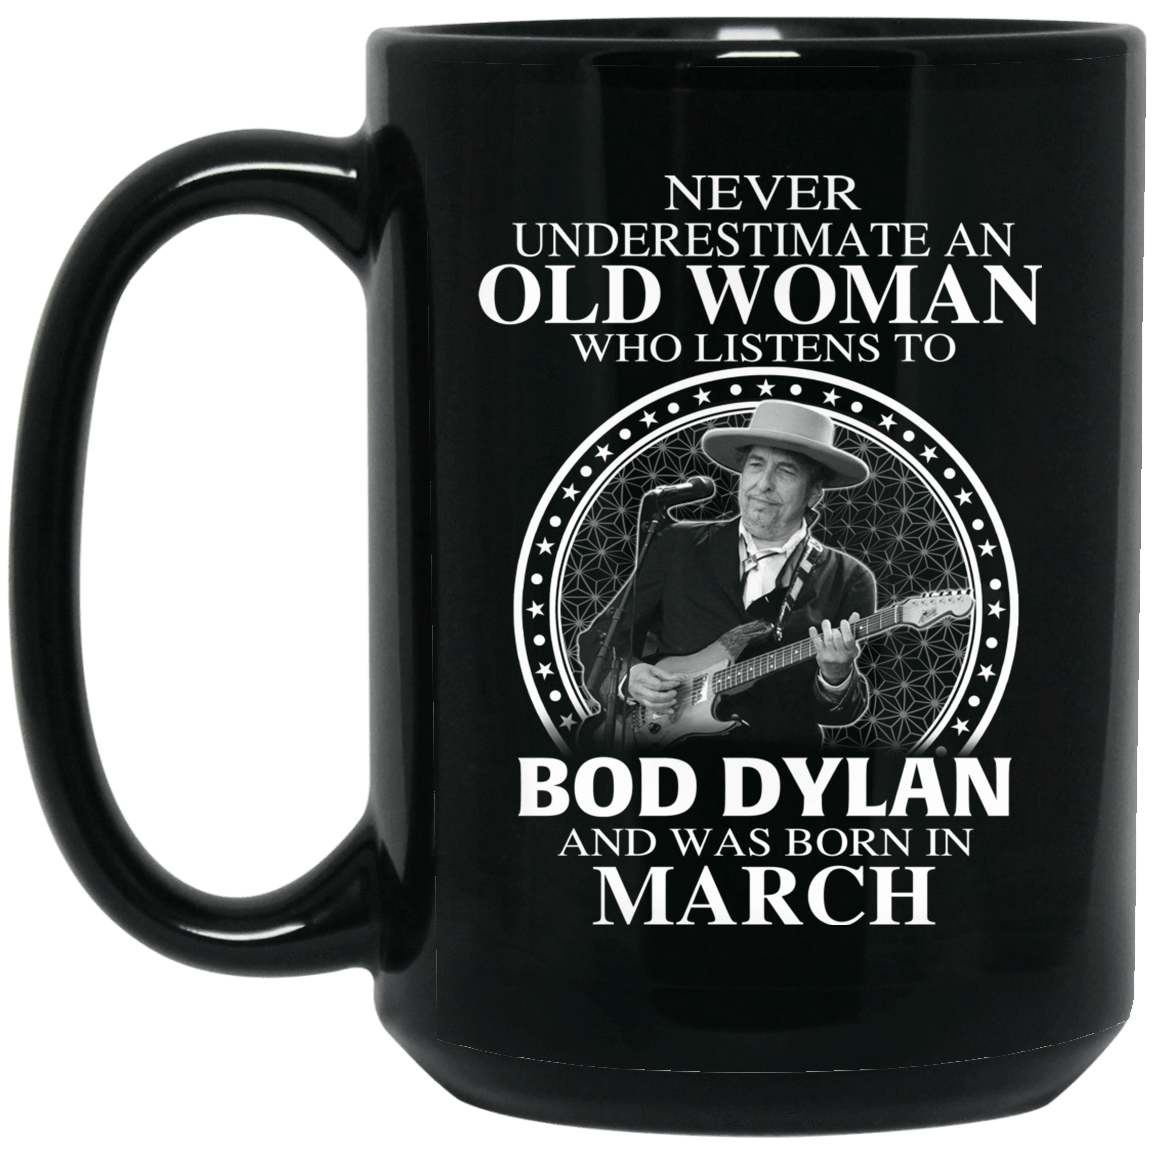 An Old Woman Who Listens To Bob Dylan And Was Born In March Mug 1066-10182-76154137-49311 - Tee Ript